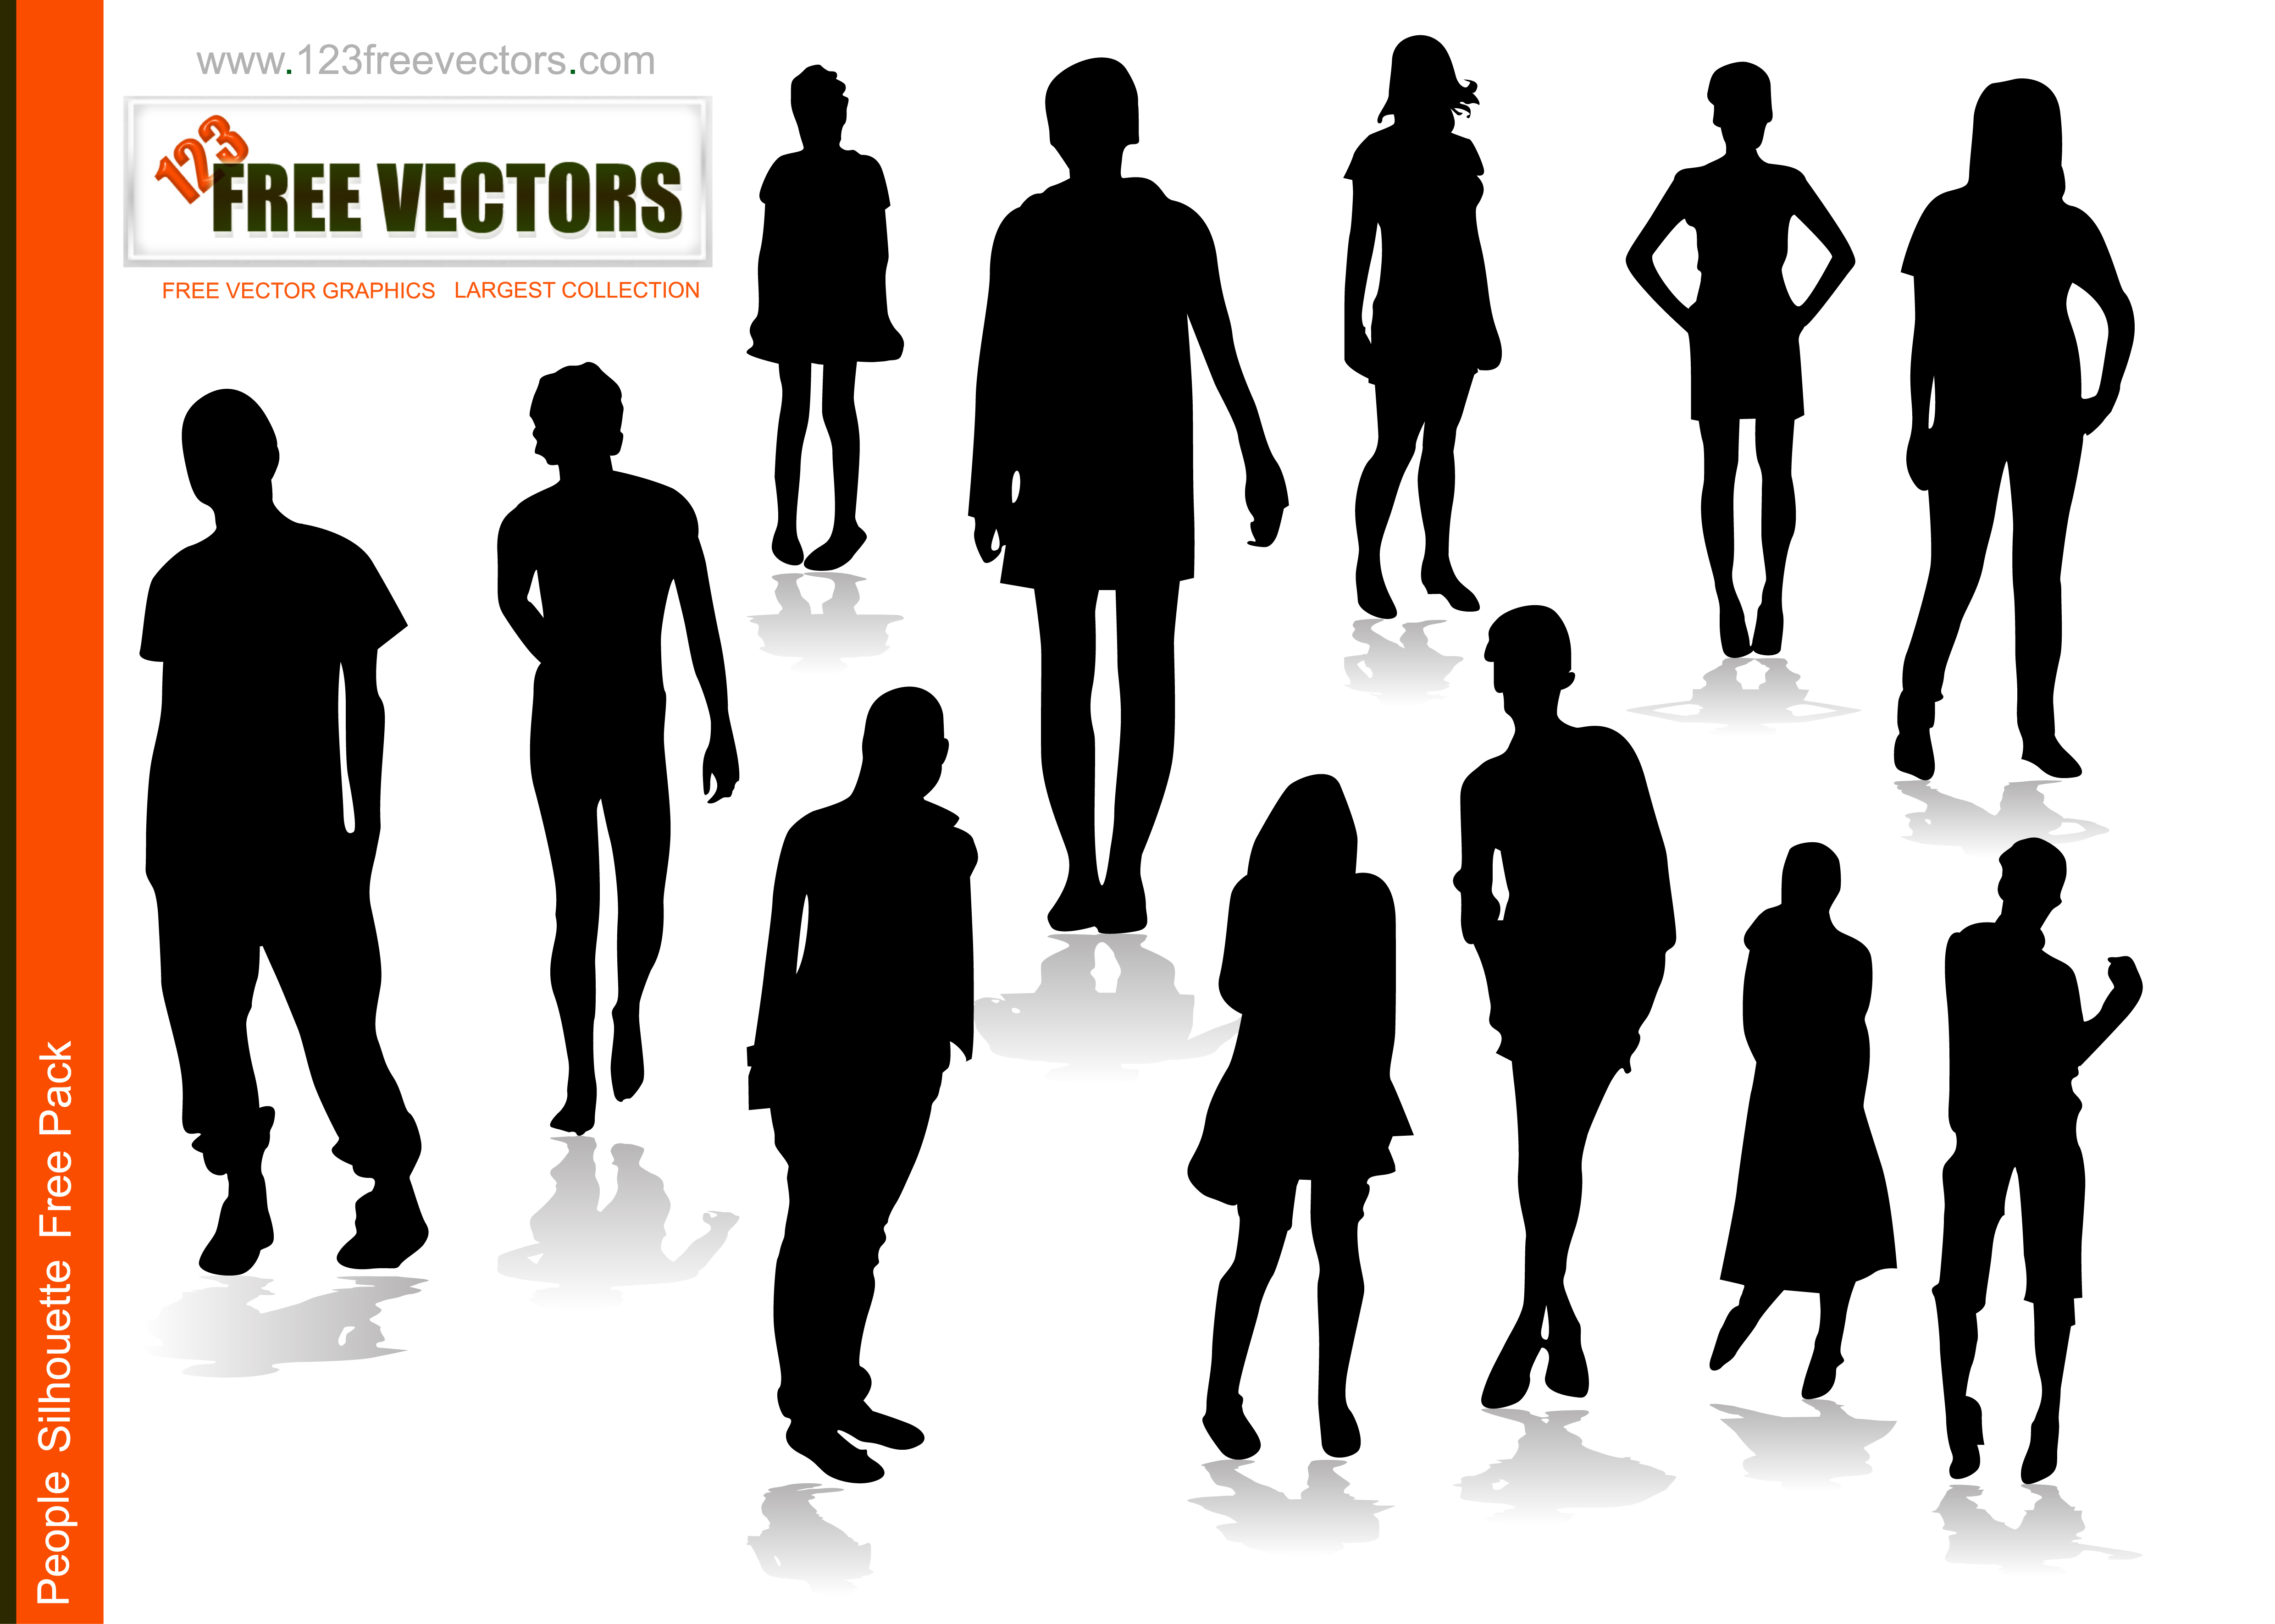 Vector People Free Illustrator